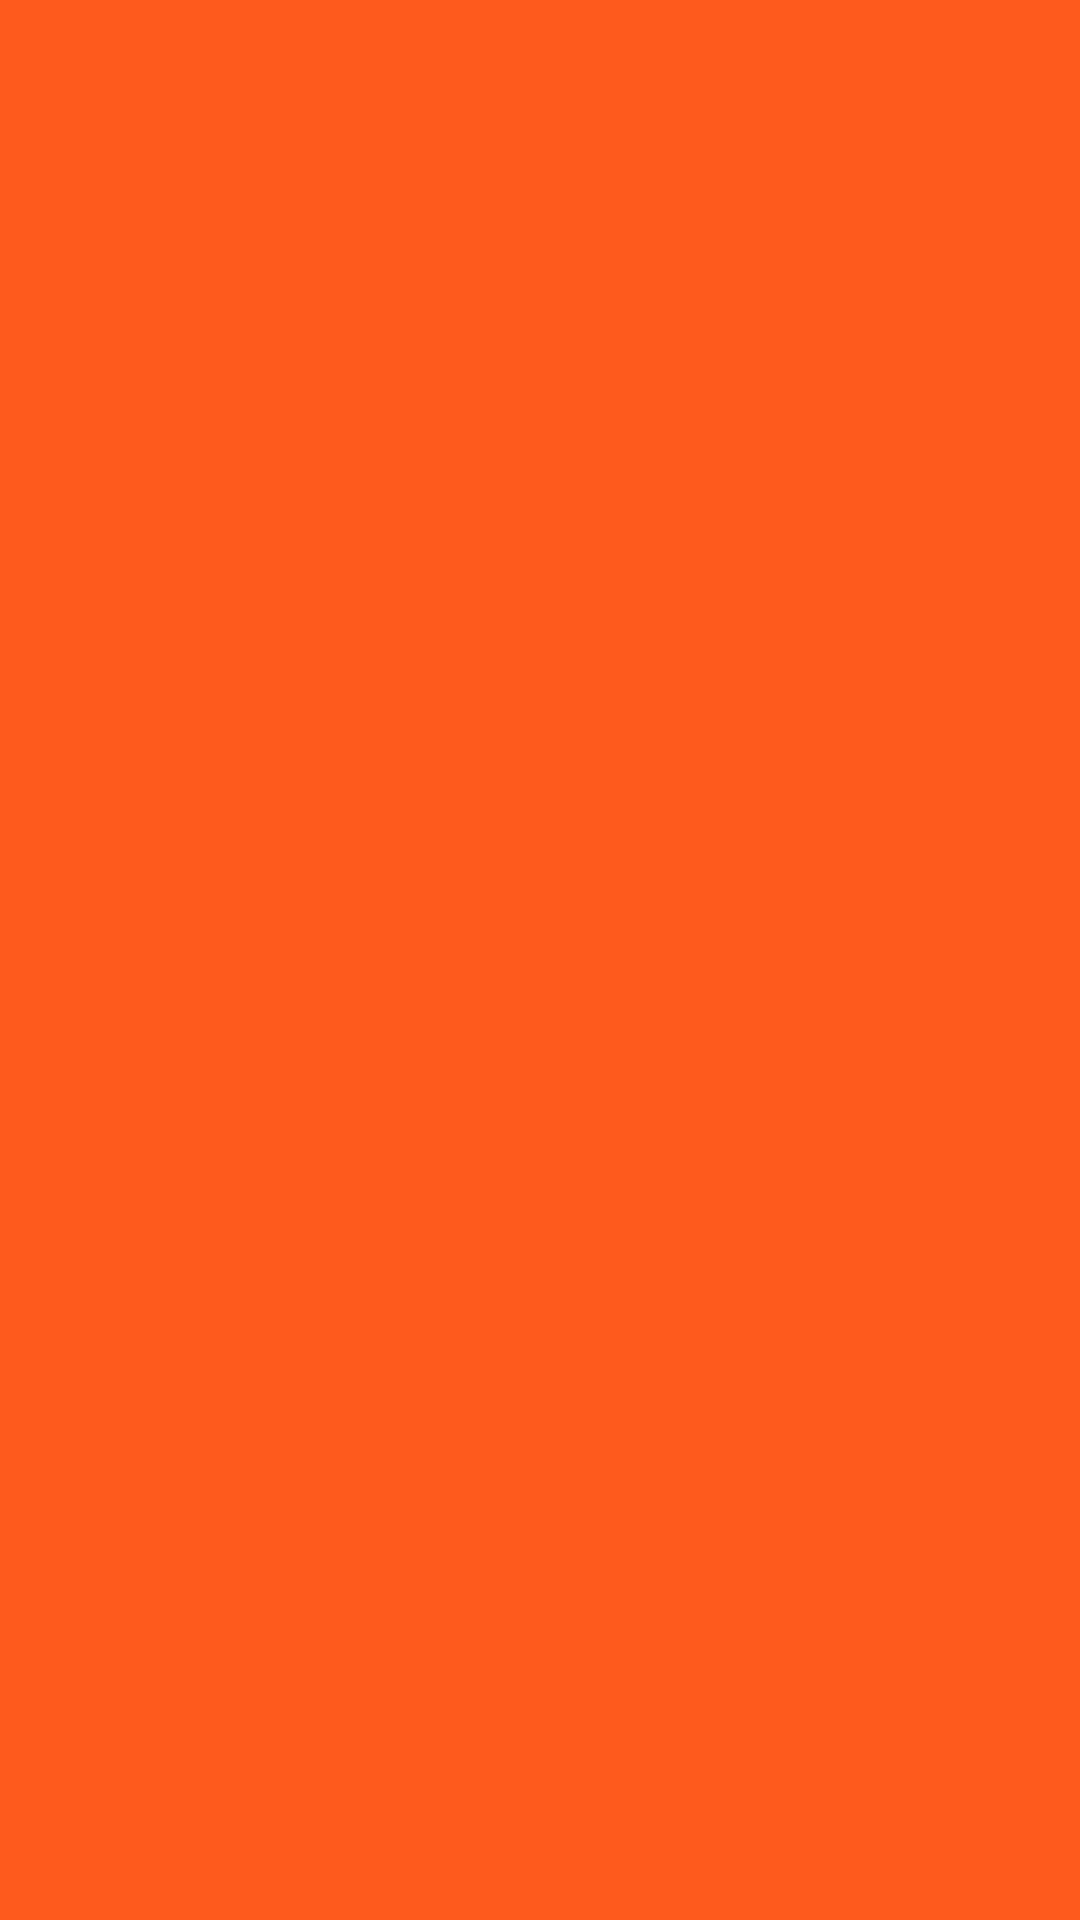 1080x1920 Giants Orange Solid Color Background